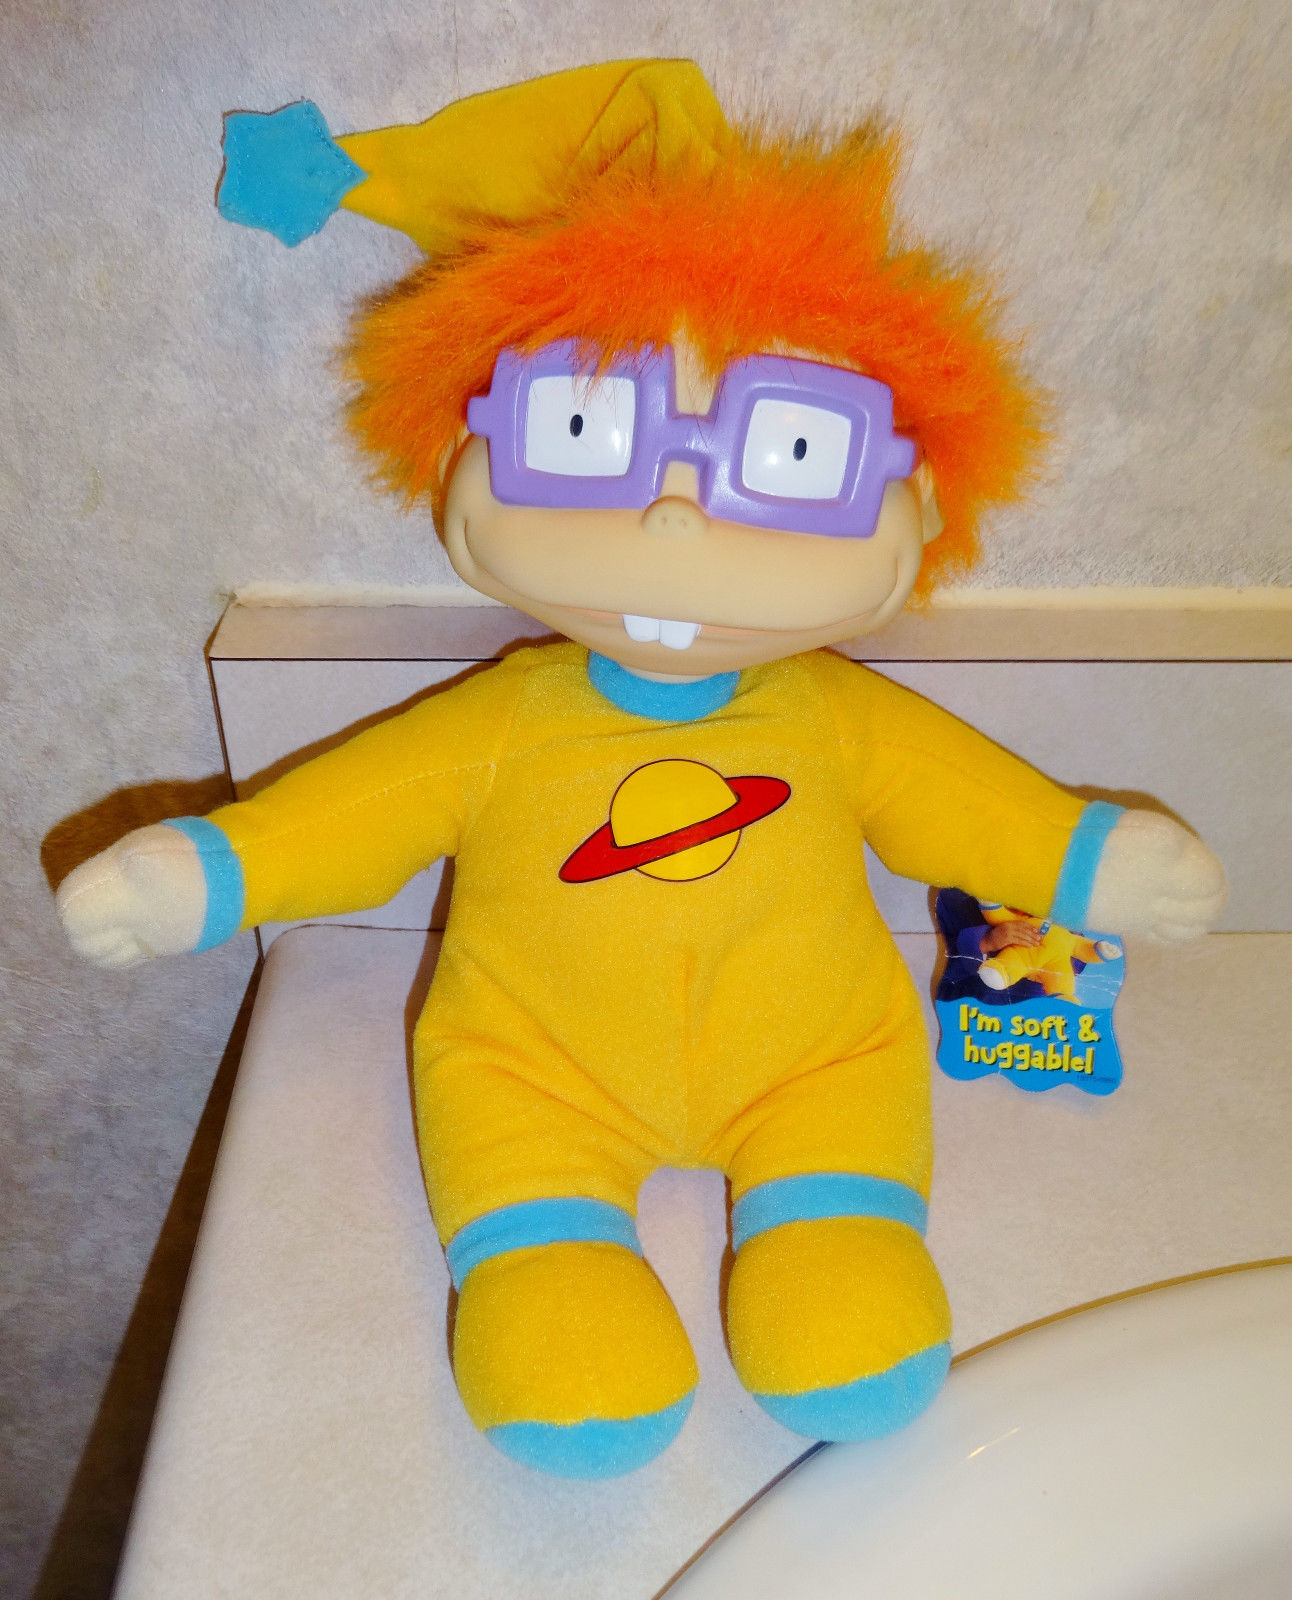 Chuckie Finster In Pajamas Rubber Face Mattel Plush Doll